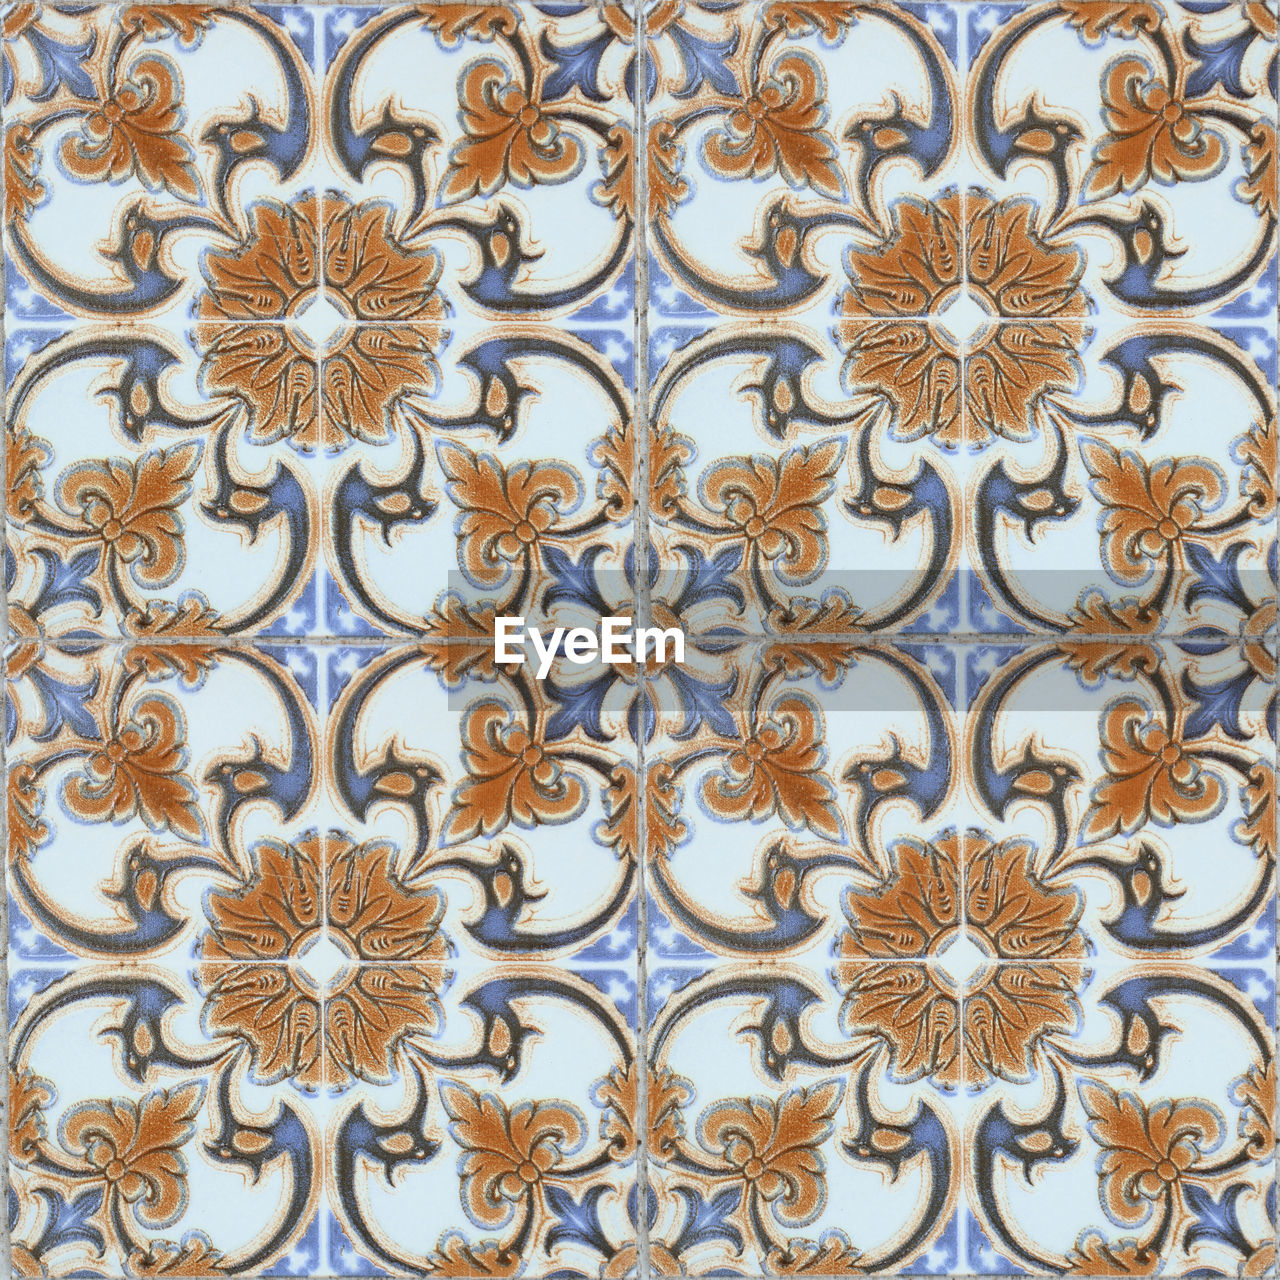 pattern, floral pattern, no people, design, backgrounds, full frame, indoors, close-up, art and craft, creativity, wall - building feature, craft, blue, built structure, architecture, ornate, day, carving - craft product, textured, metal, tiled floor, wrought iron